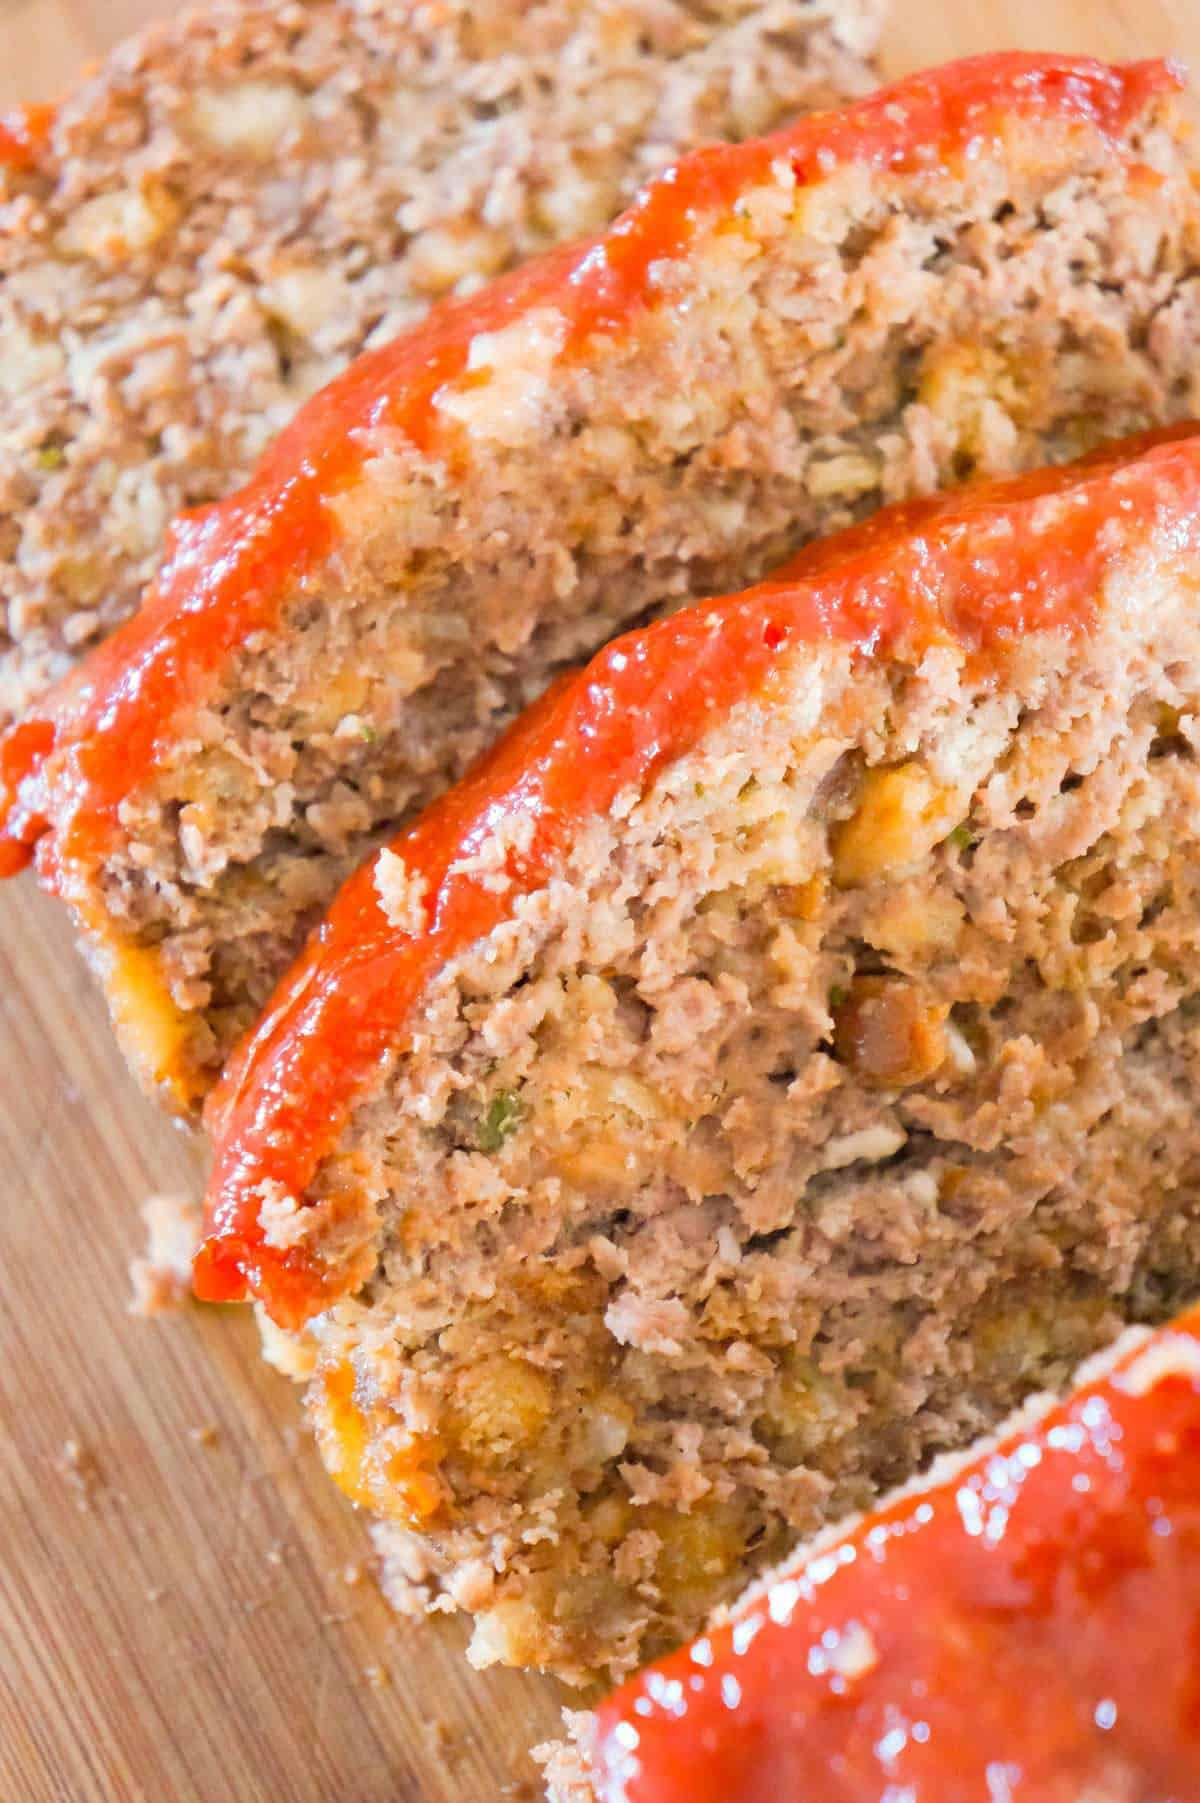 Meatloaf with Stuffing is a tasty 2 pound ground beef meatloaf made with Stove Top stuffing mix.